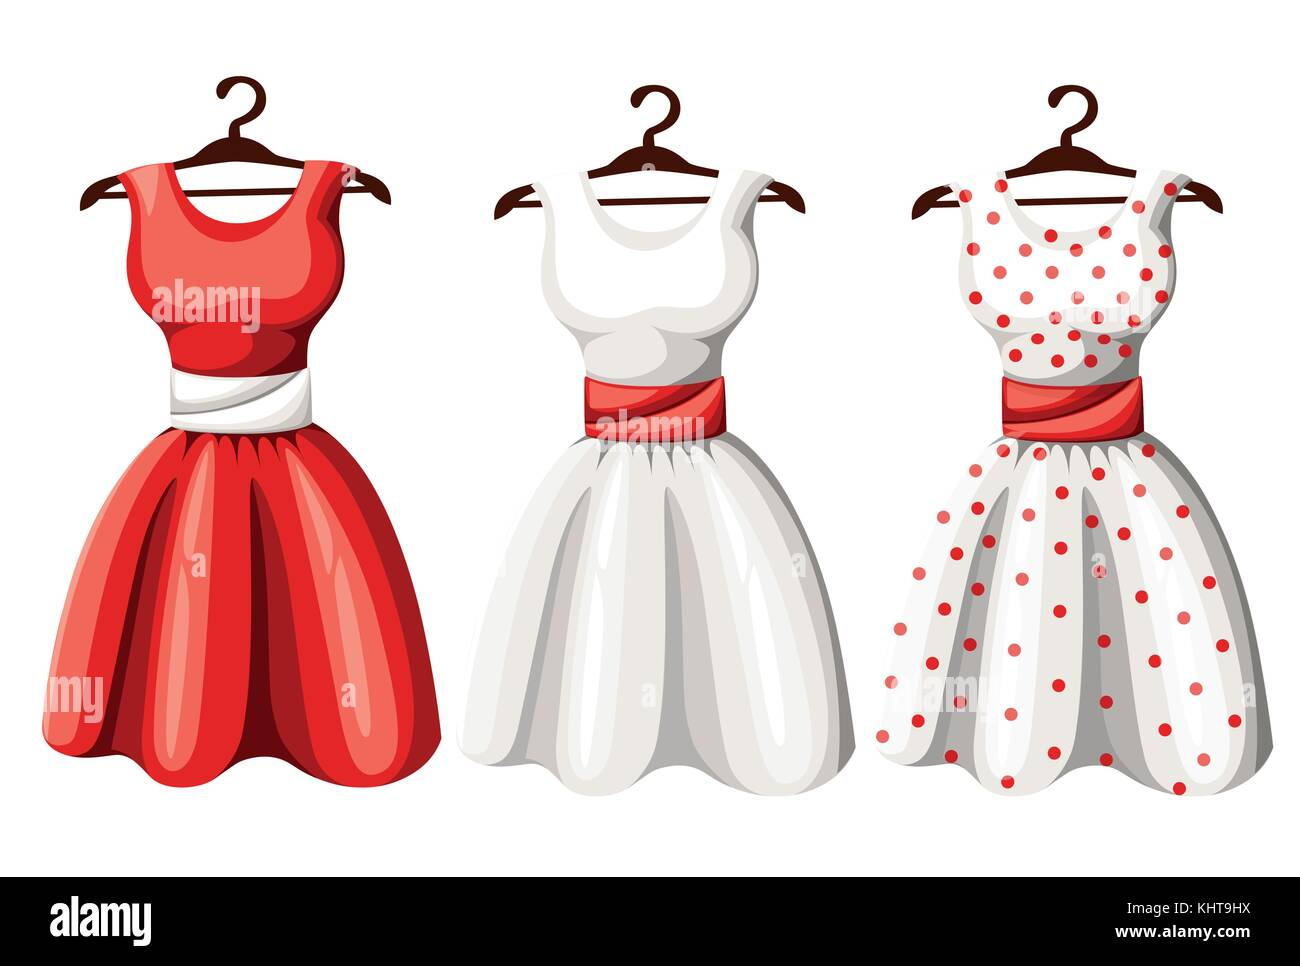 Set of retro pinup cute woman dresses. Short and long elegant black, red and white color polka dot design lady dress - Stock Vector